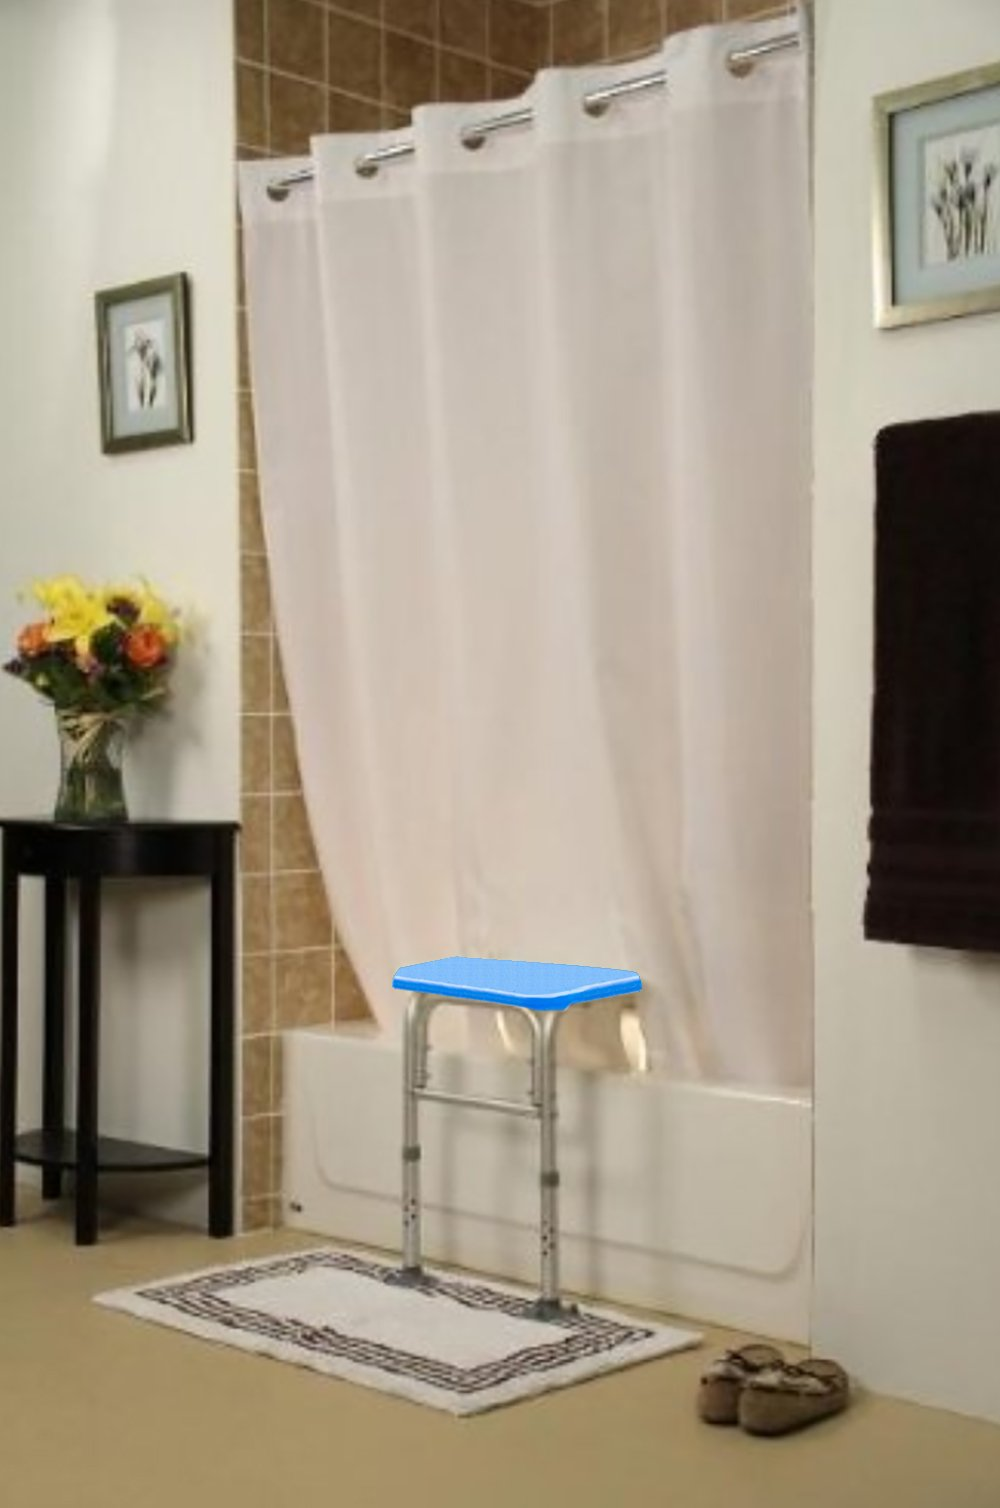 BenchMate Split Shower Curtain for Bath Transfer Benches - Beautiful Designer Fabric, Premium Hookless Quick-Attach System, Designed Specifically to Help Keep Water Off The Floor. (Chamonix White)